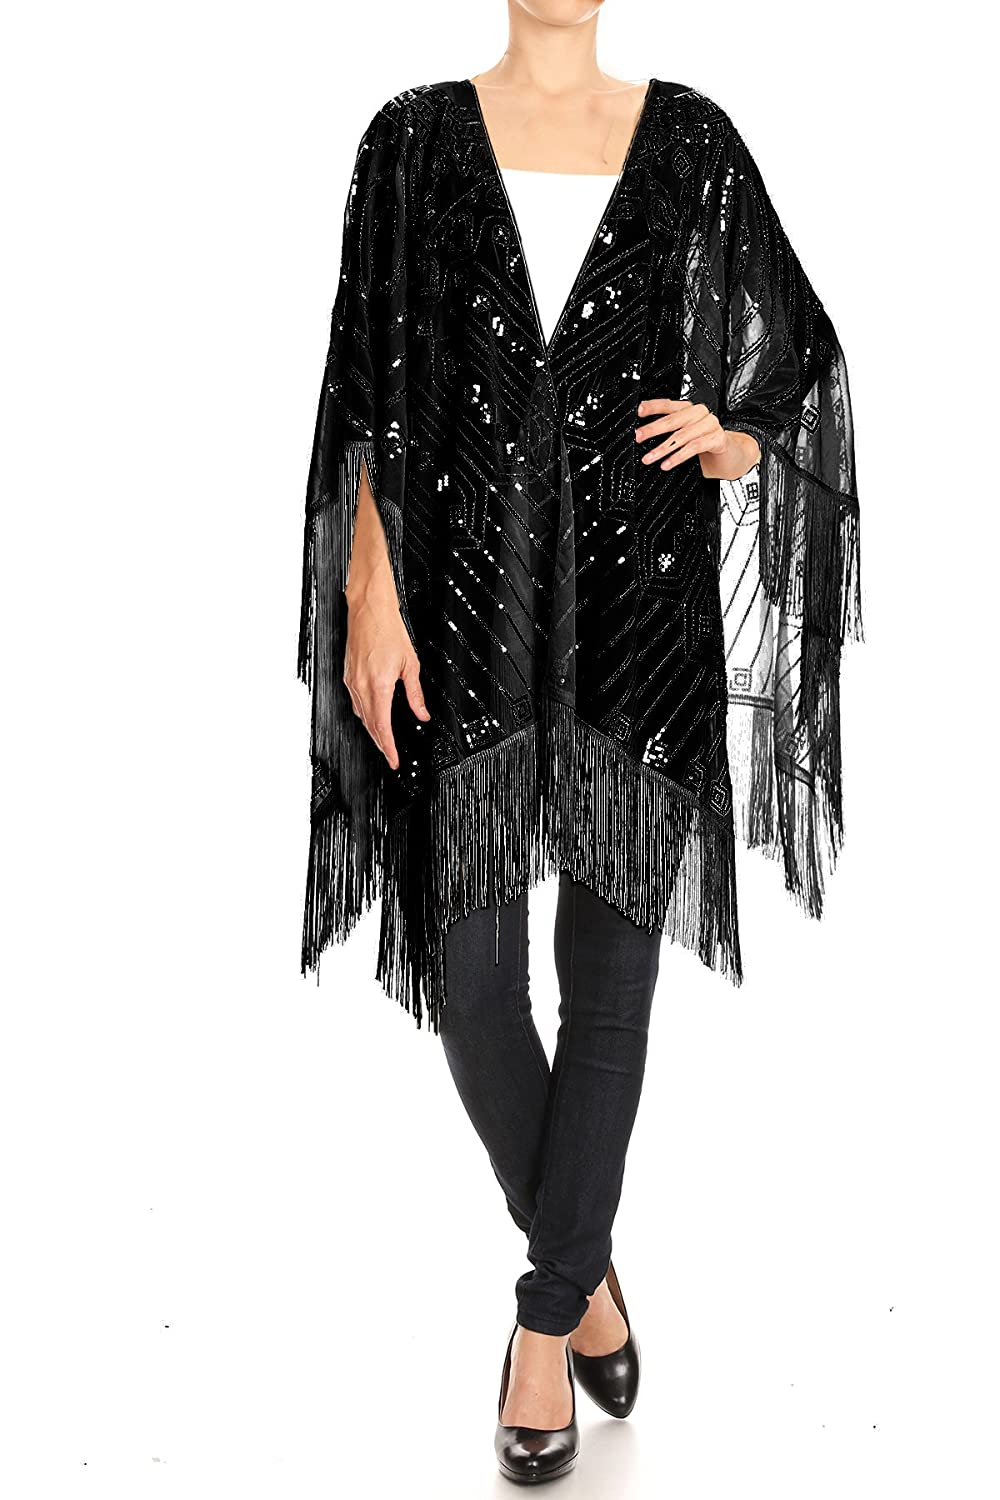 History of 1920s Coats, Furs and Capes Anna-Kaci Womens Oversized Hand Beaded and Sequin Evening Shawl Wrap with Fringe $26.90 AT vintagedancer.com